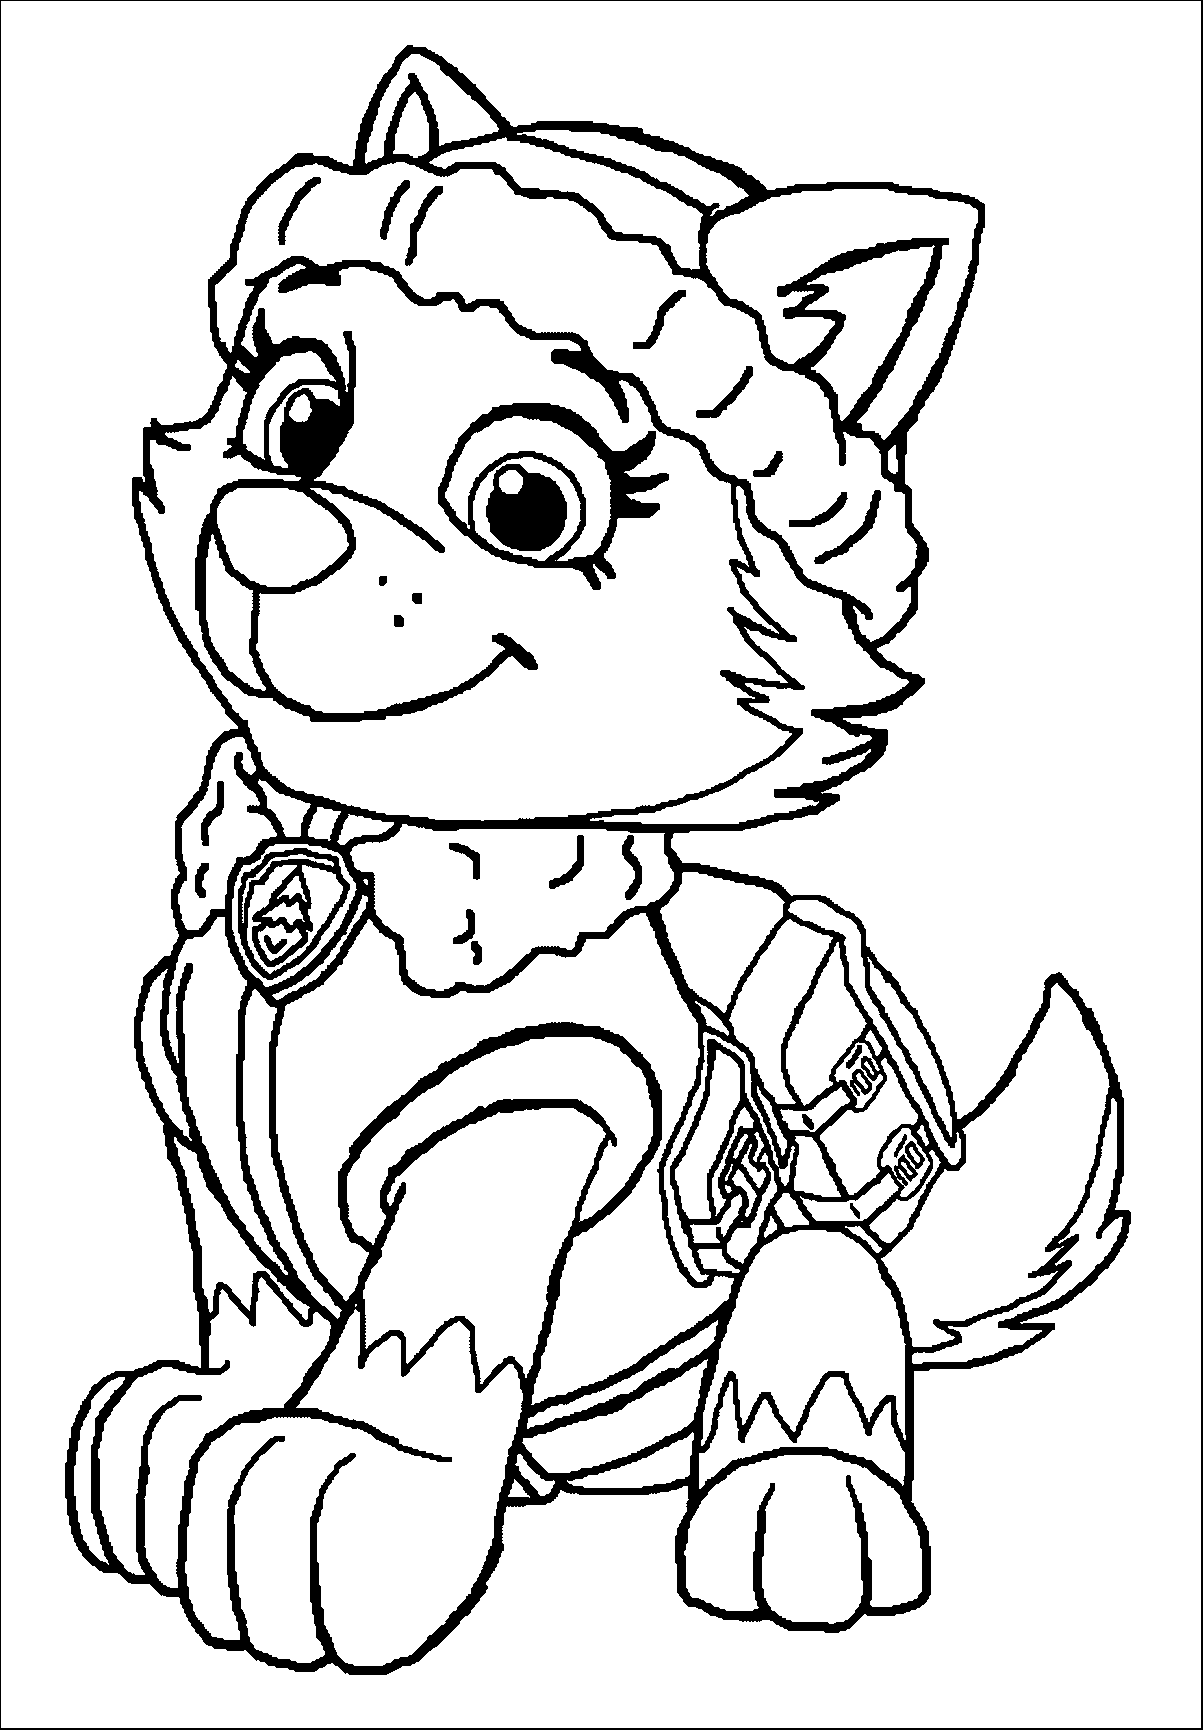 paw patrol coloring outline paw patrol coloring pages free printable coloring page patrol coloring paw outline